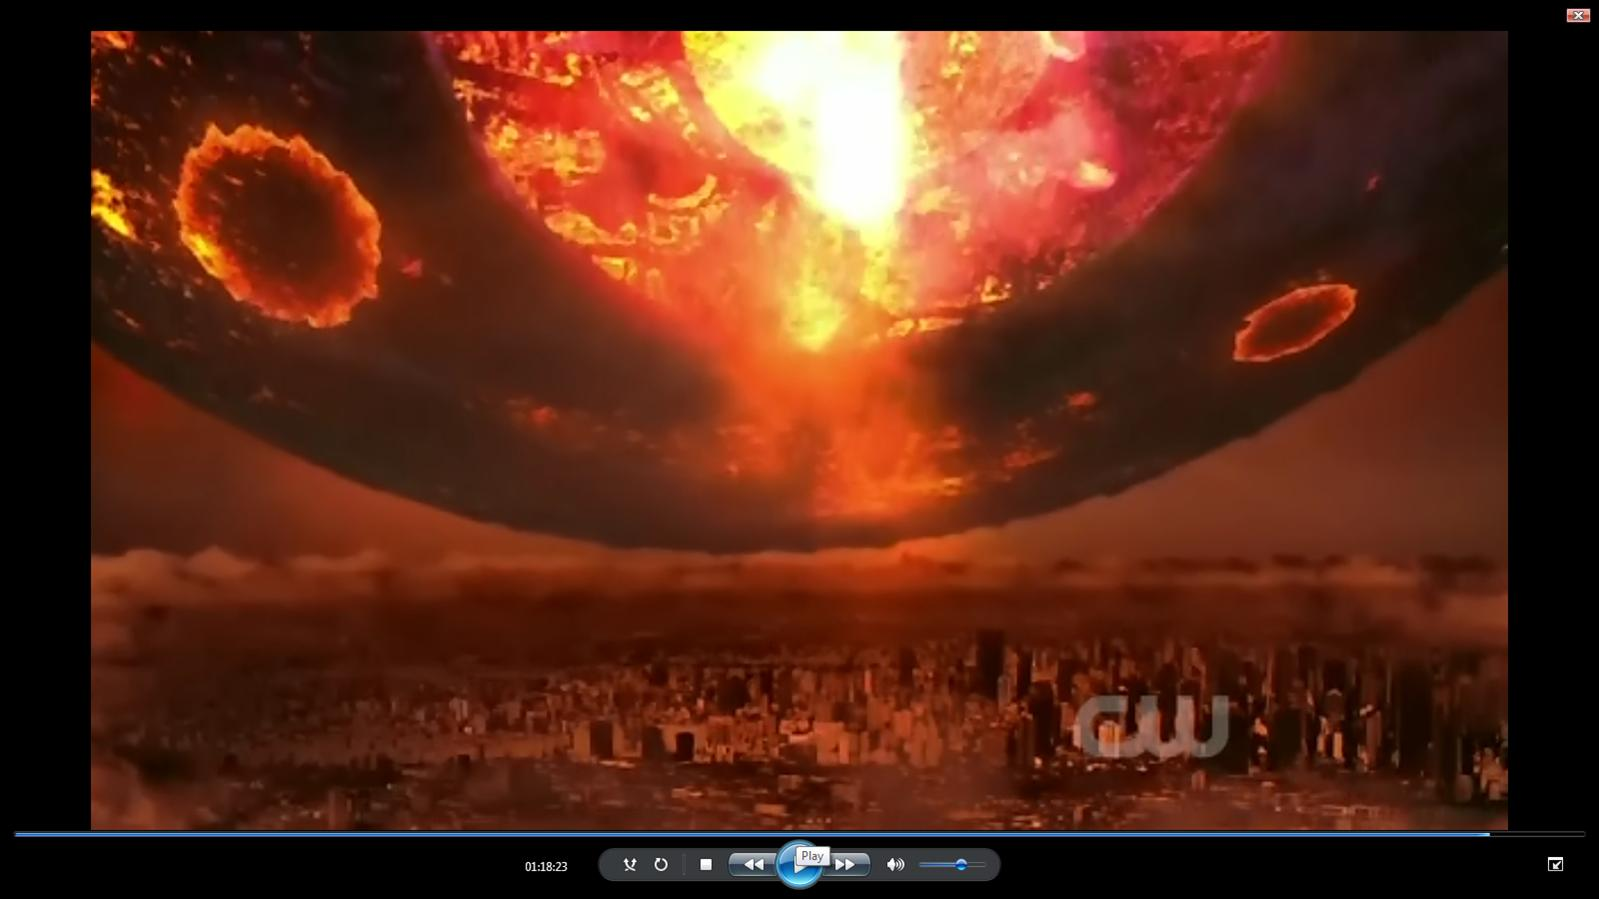 Mark's Super Blog: Another Comment on the Smallville FinaleApokolips Smallville